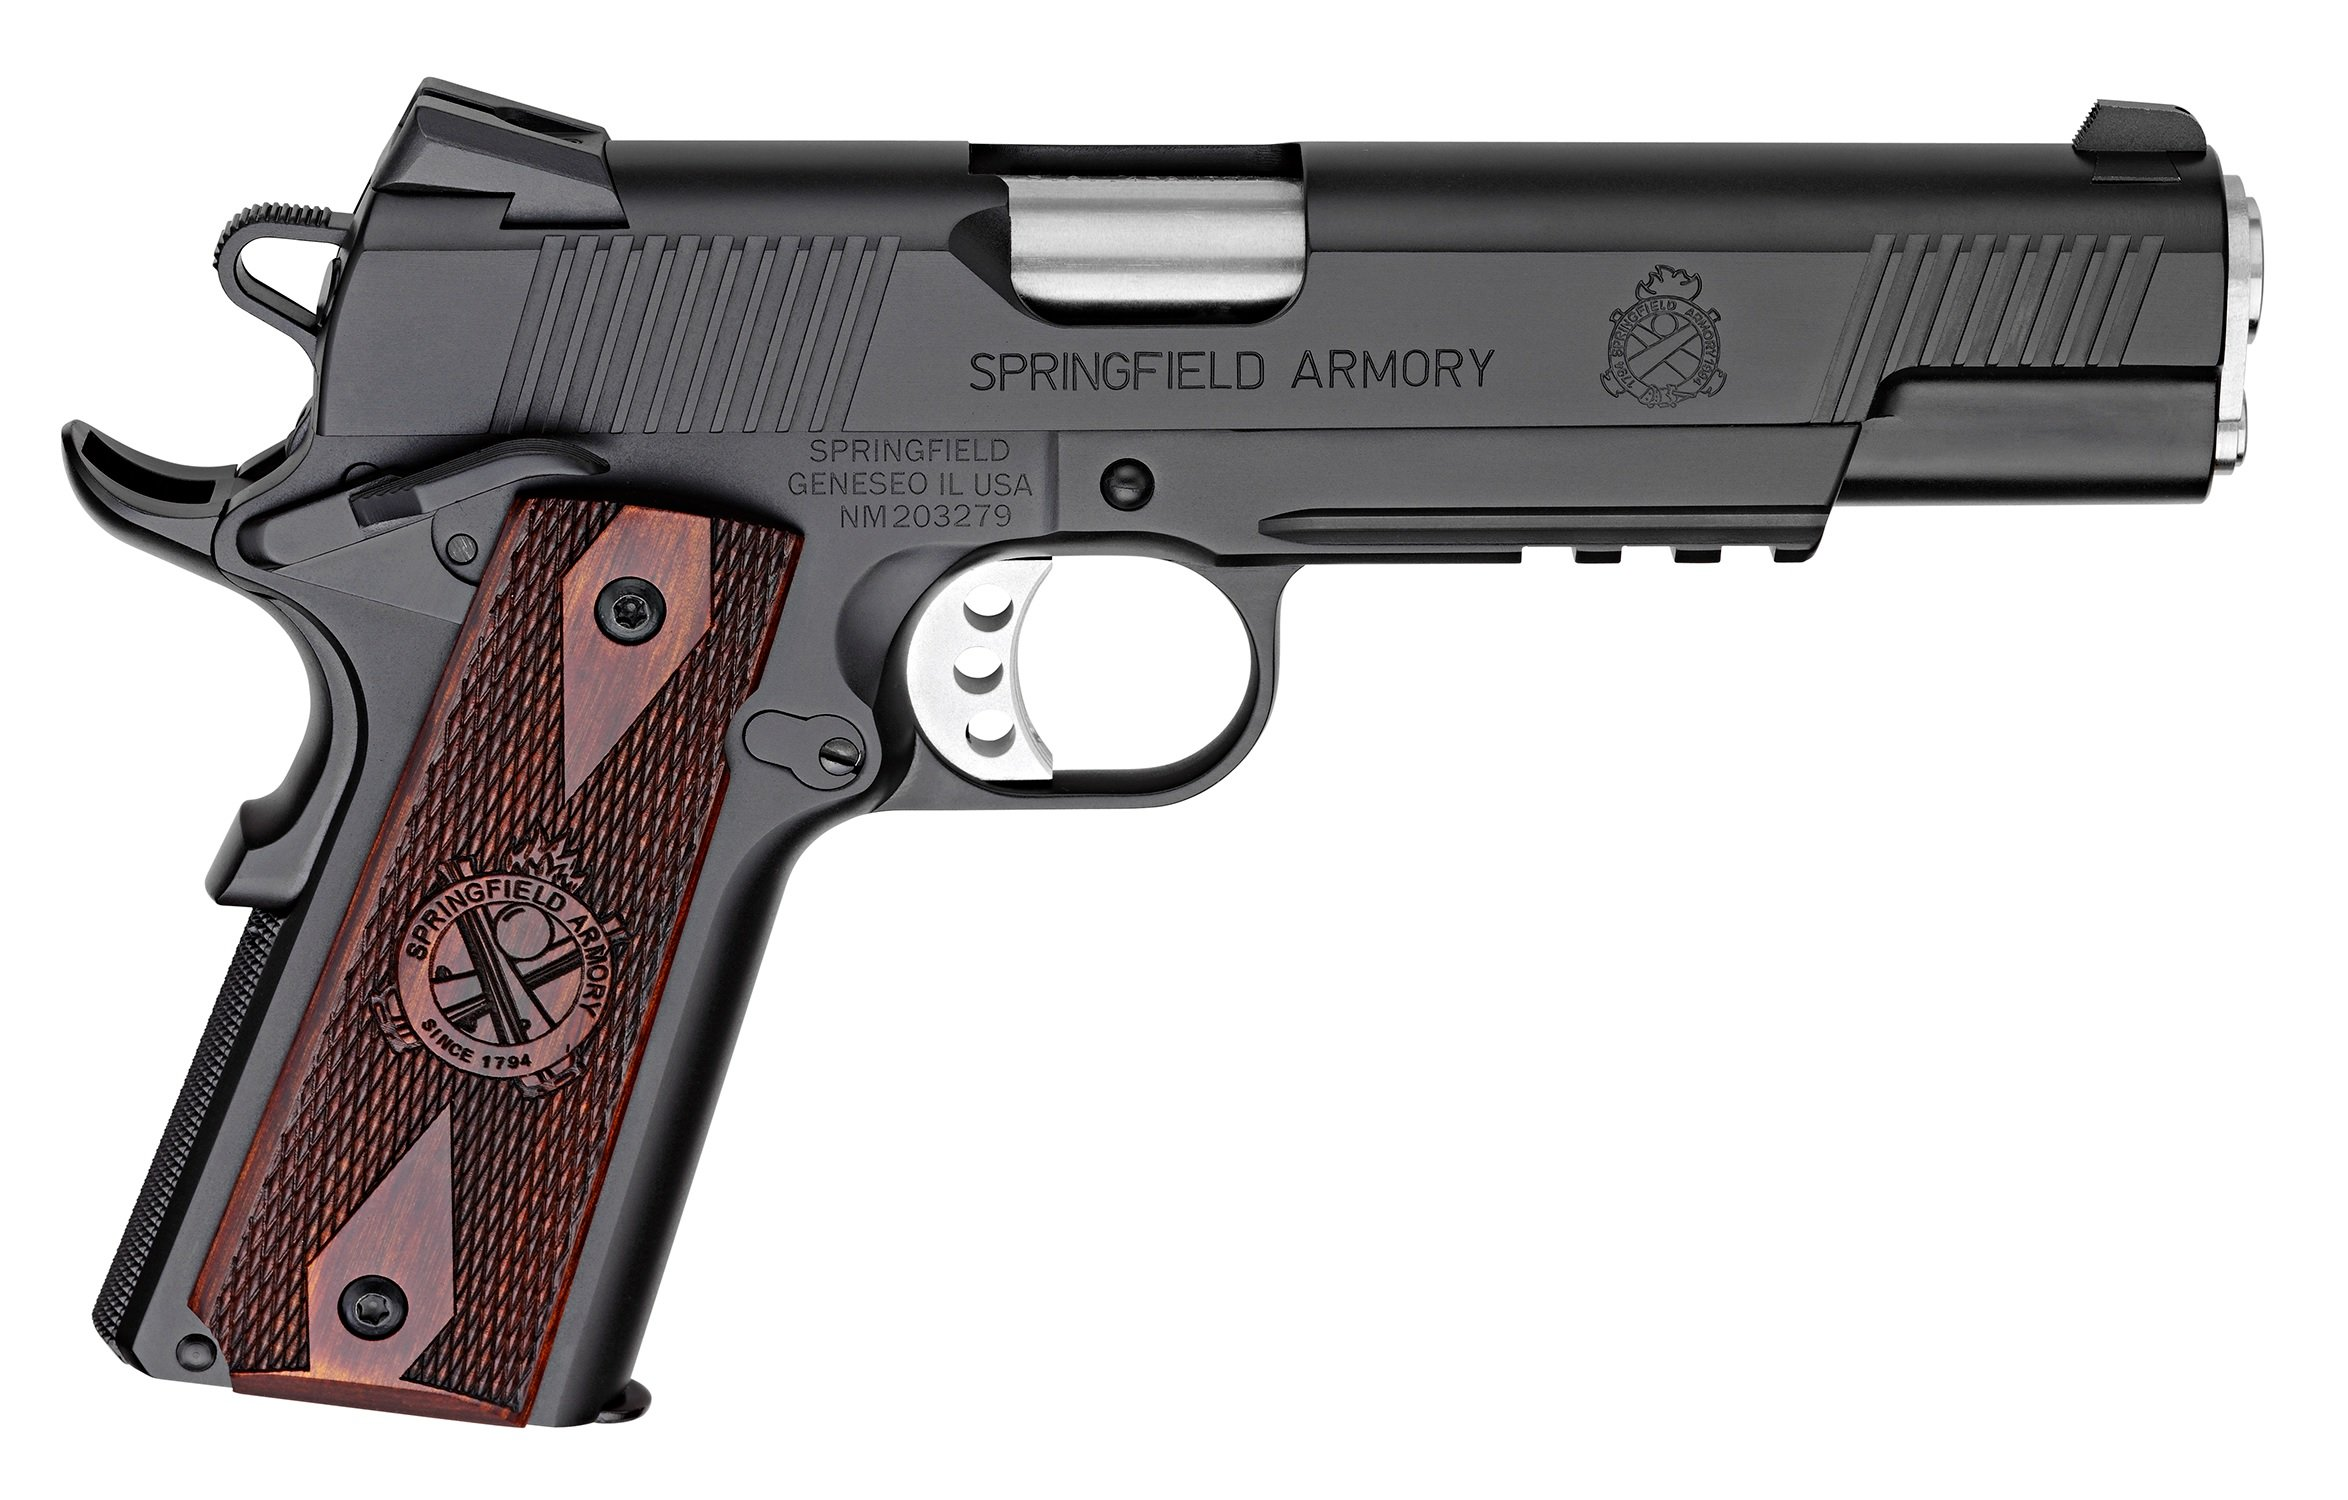 SPRINGFIELD 1911 LOADED .45 ACP 5